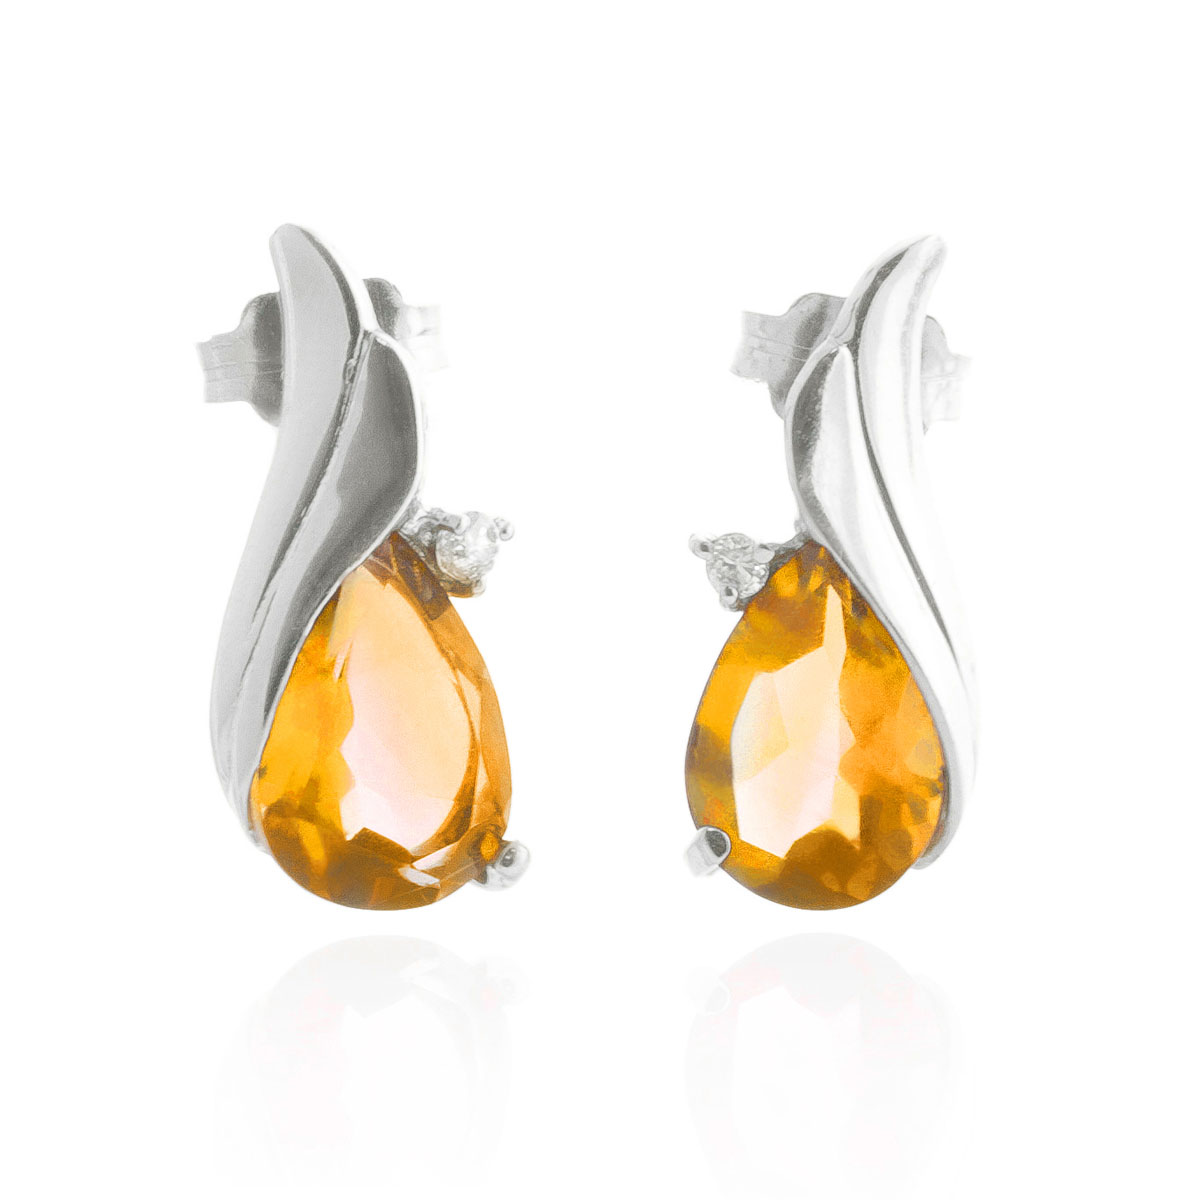 Citrine Stud Earrings 3.26 ctw in 9ct White Gold